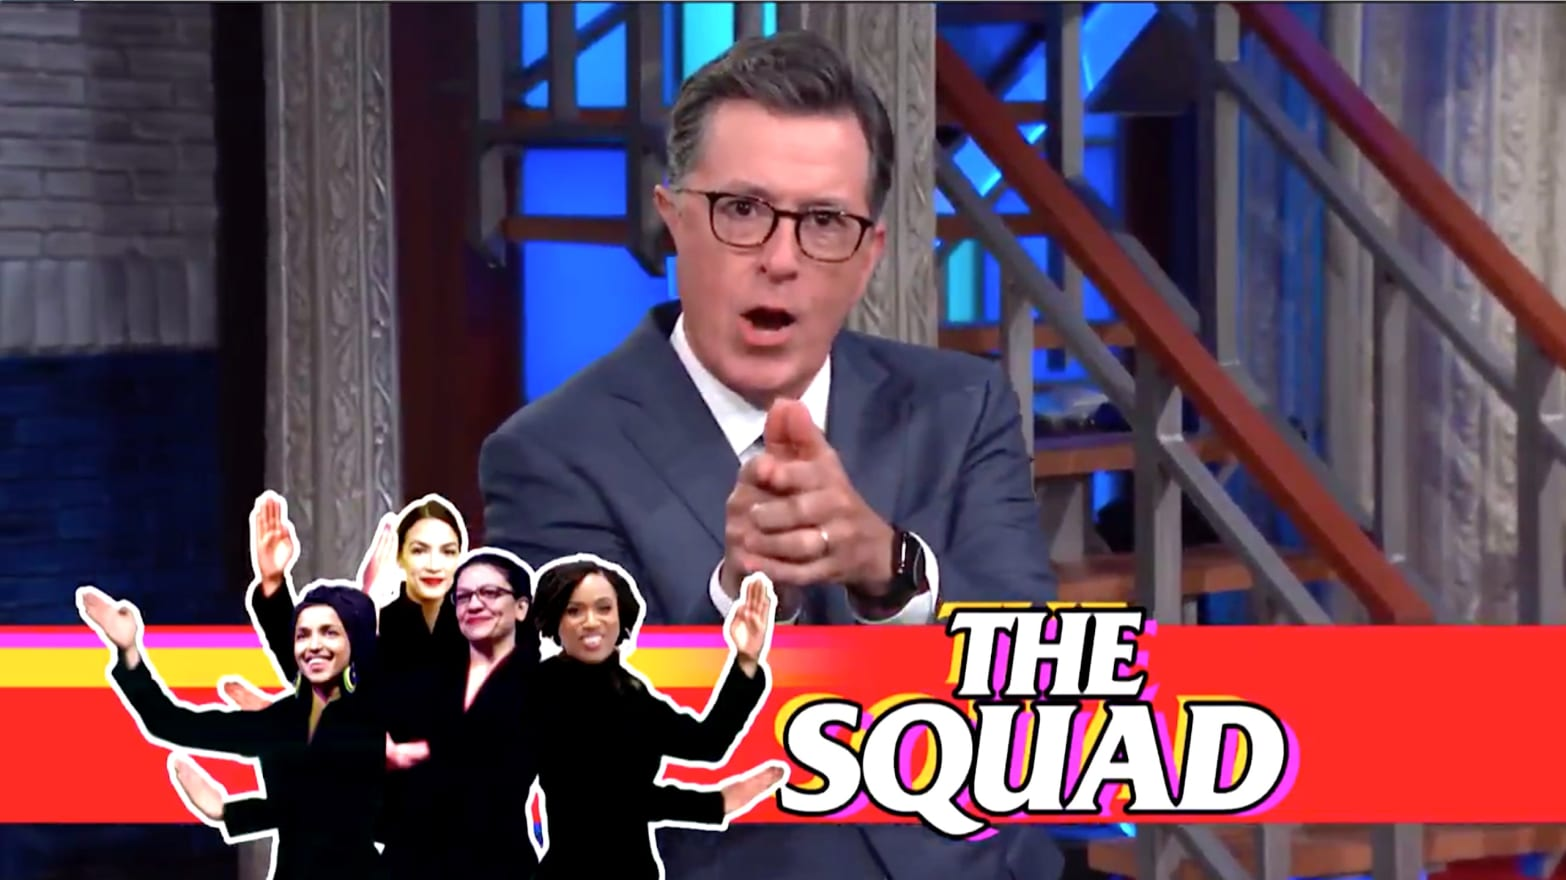 Stephen Colbert Mocks Trump's Lame Clapback at The Squad: 'Racism Is Your Brand'